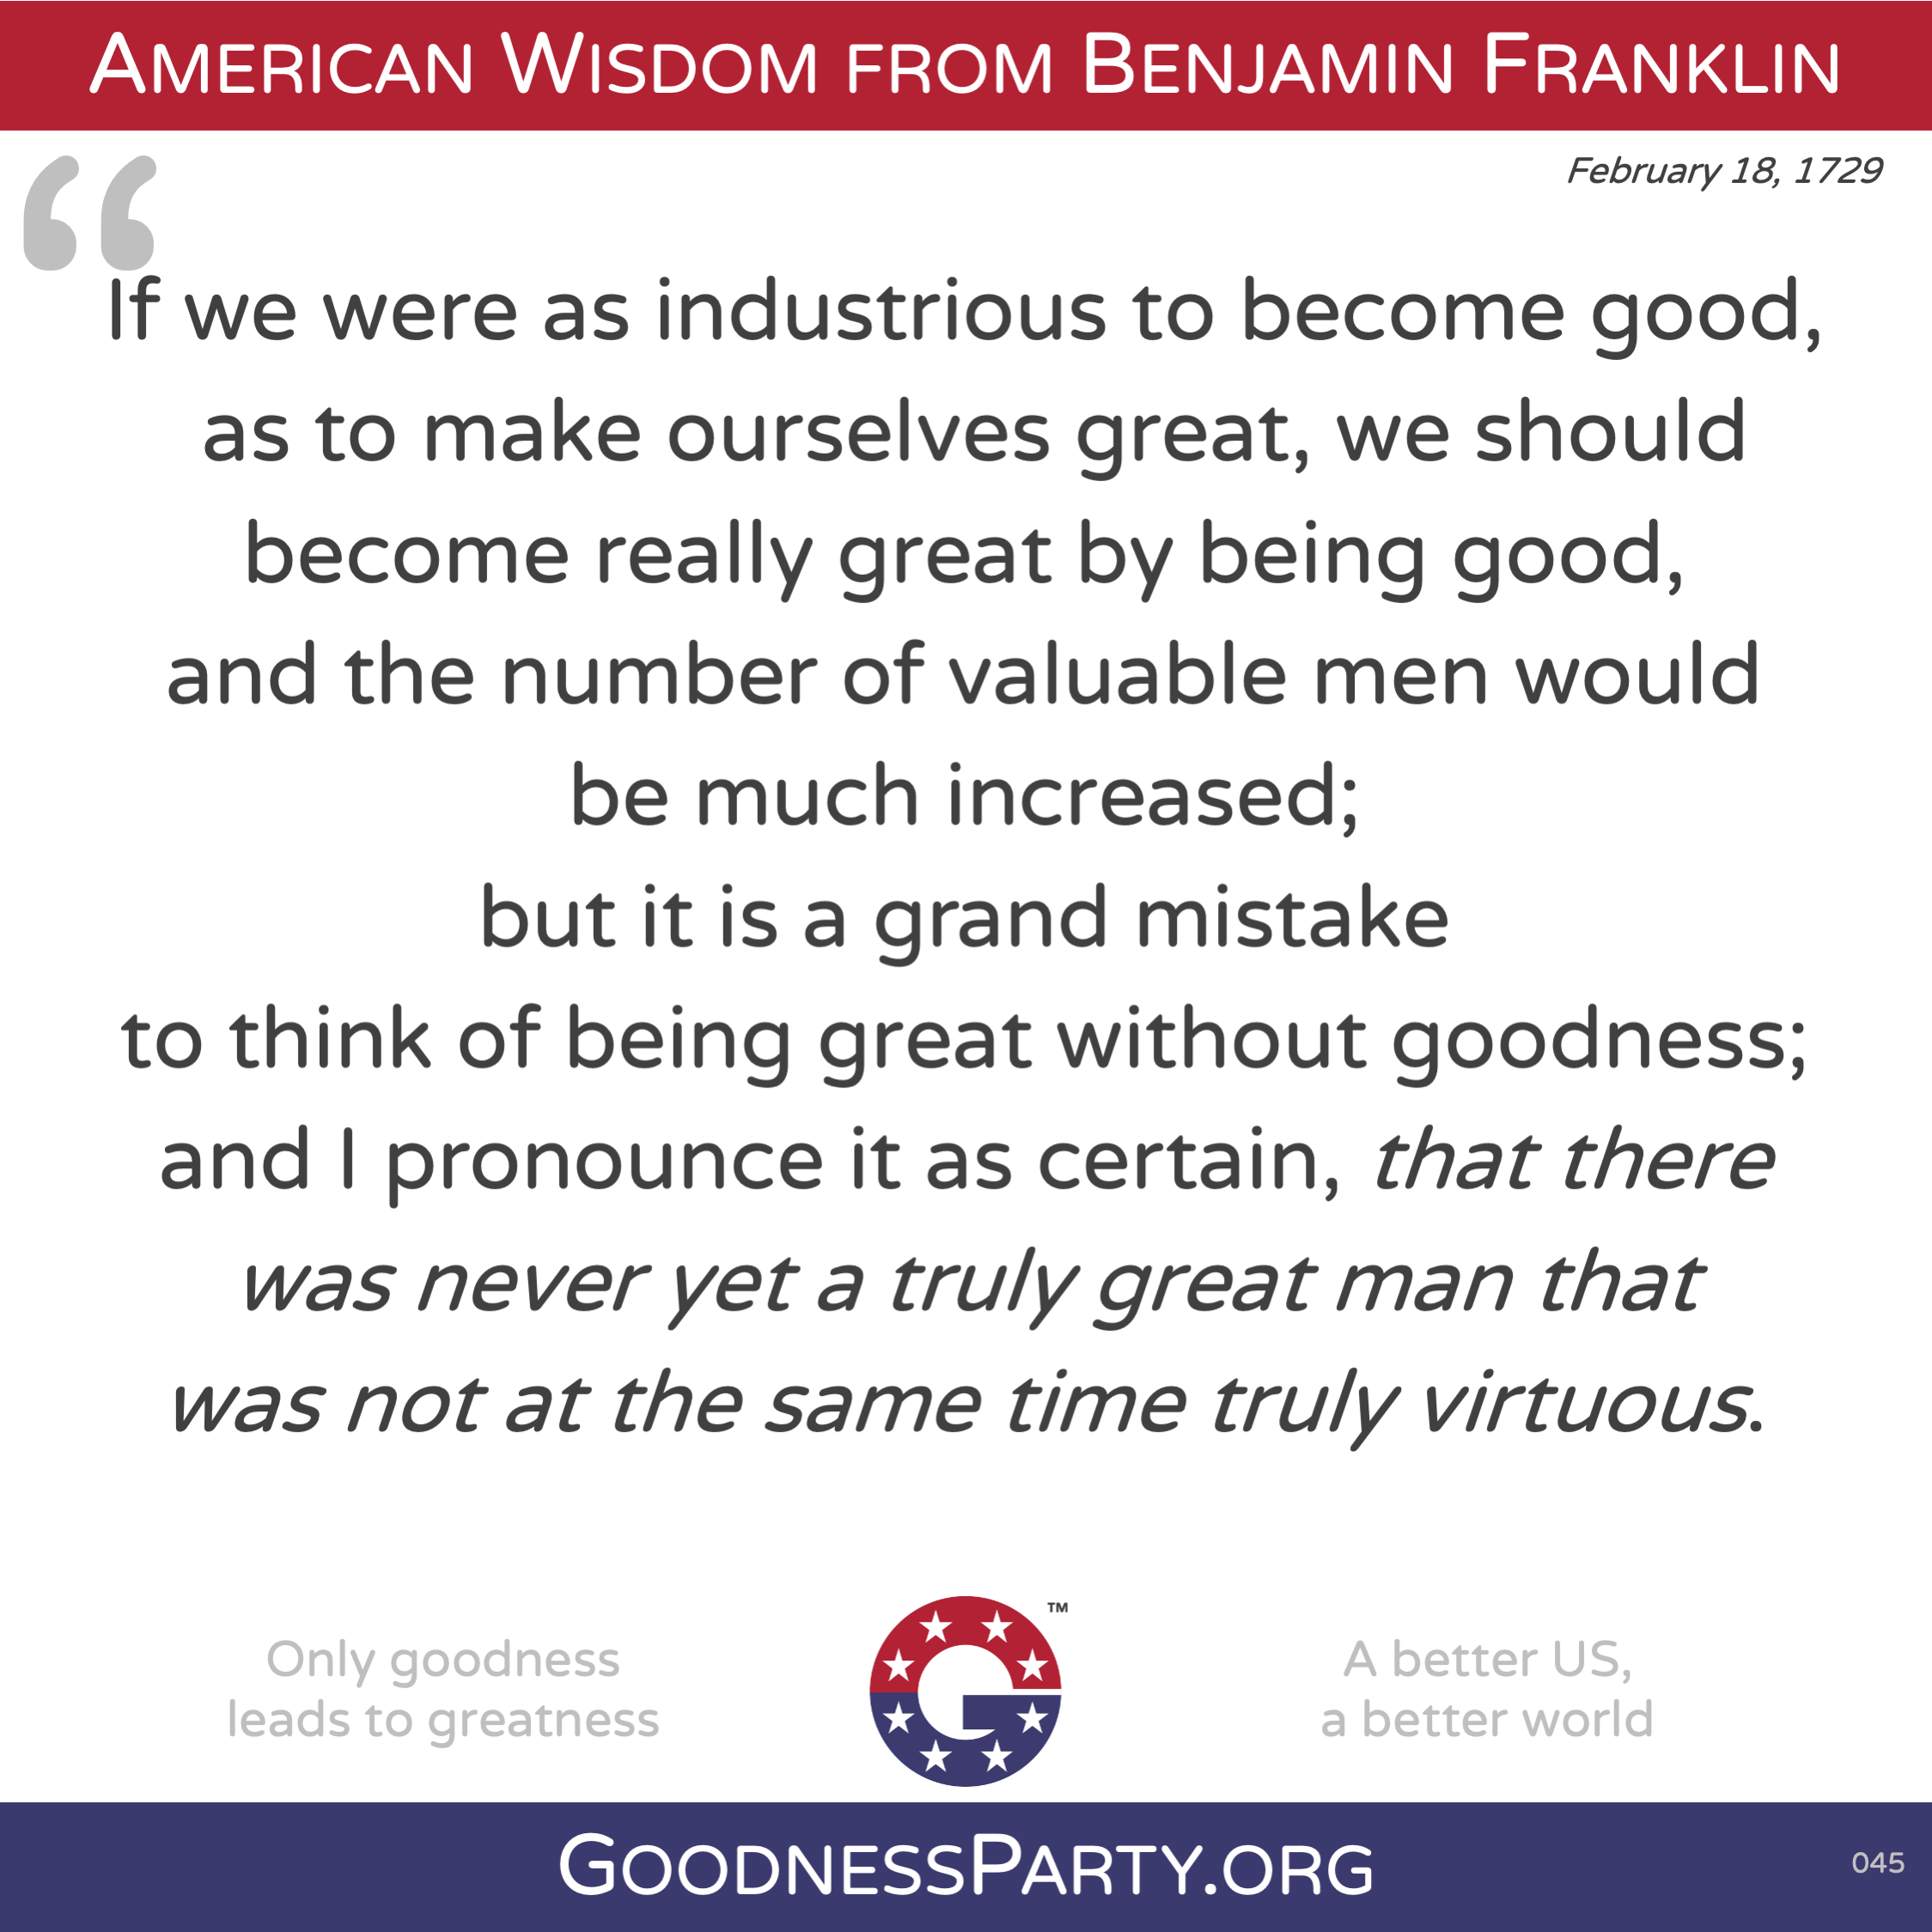 Goodness Party Benjamin Franklin Cannot be Great without Goodness